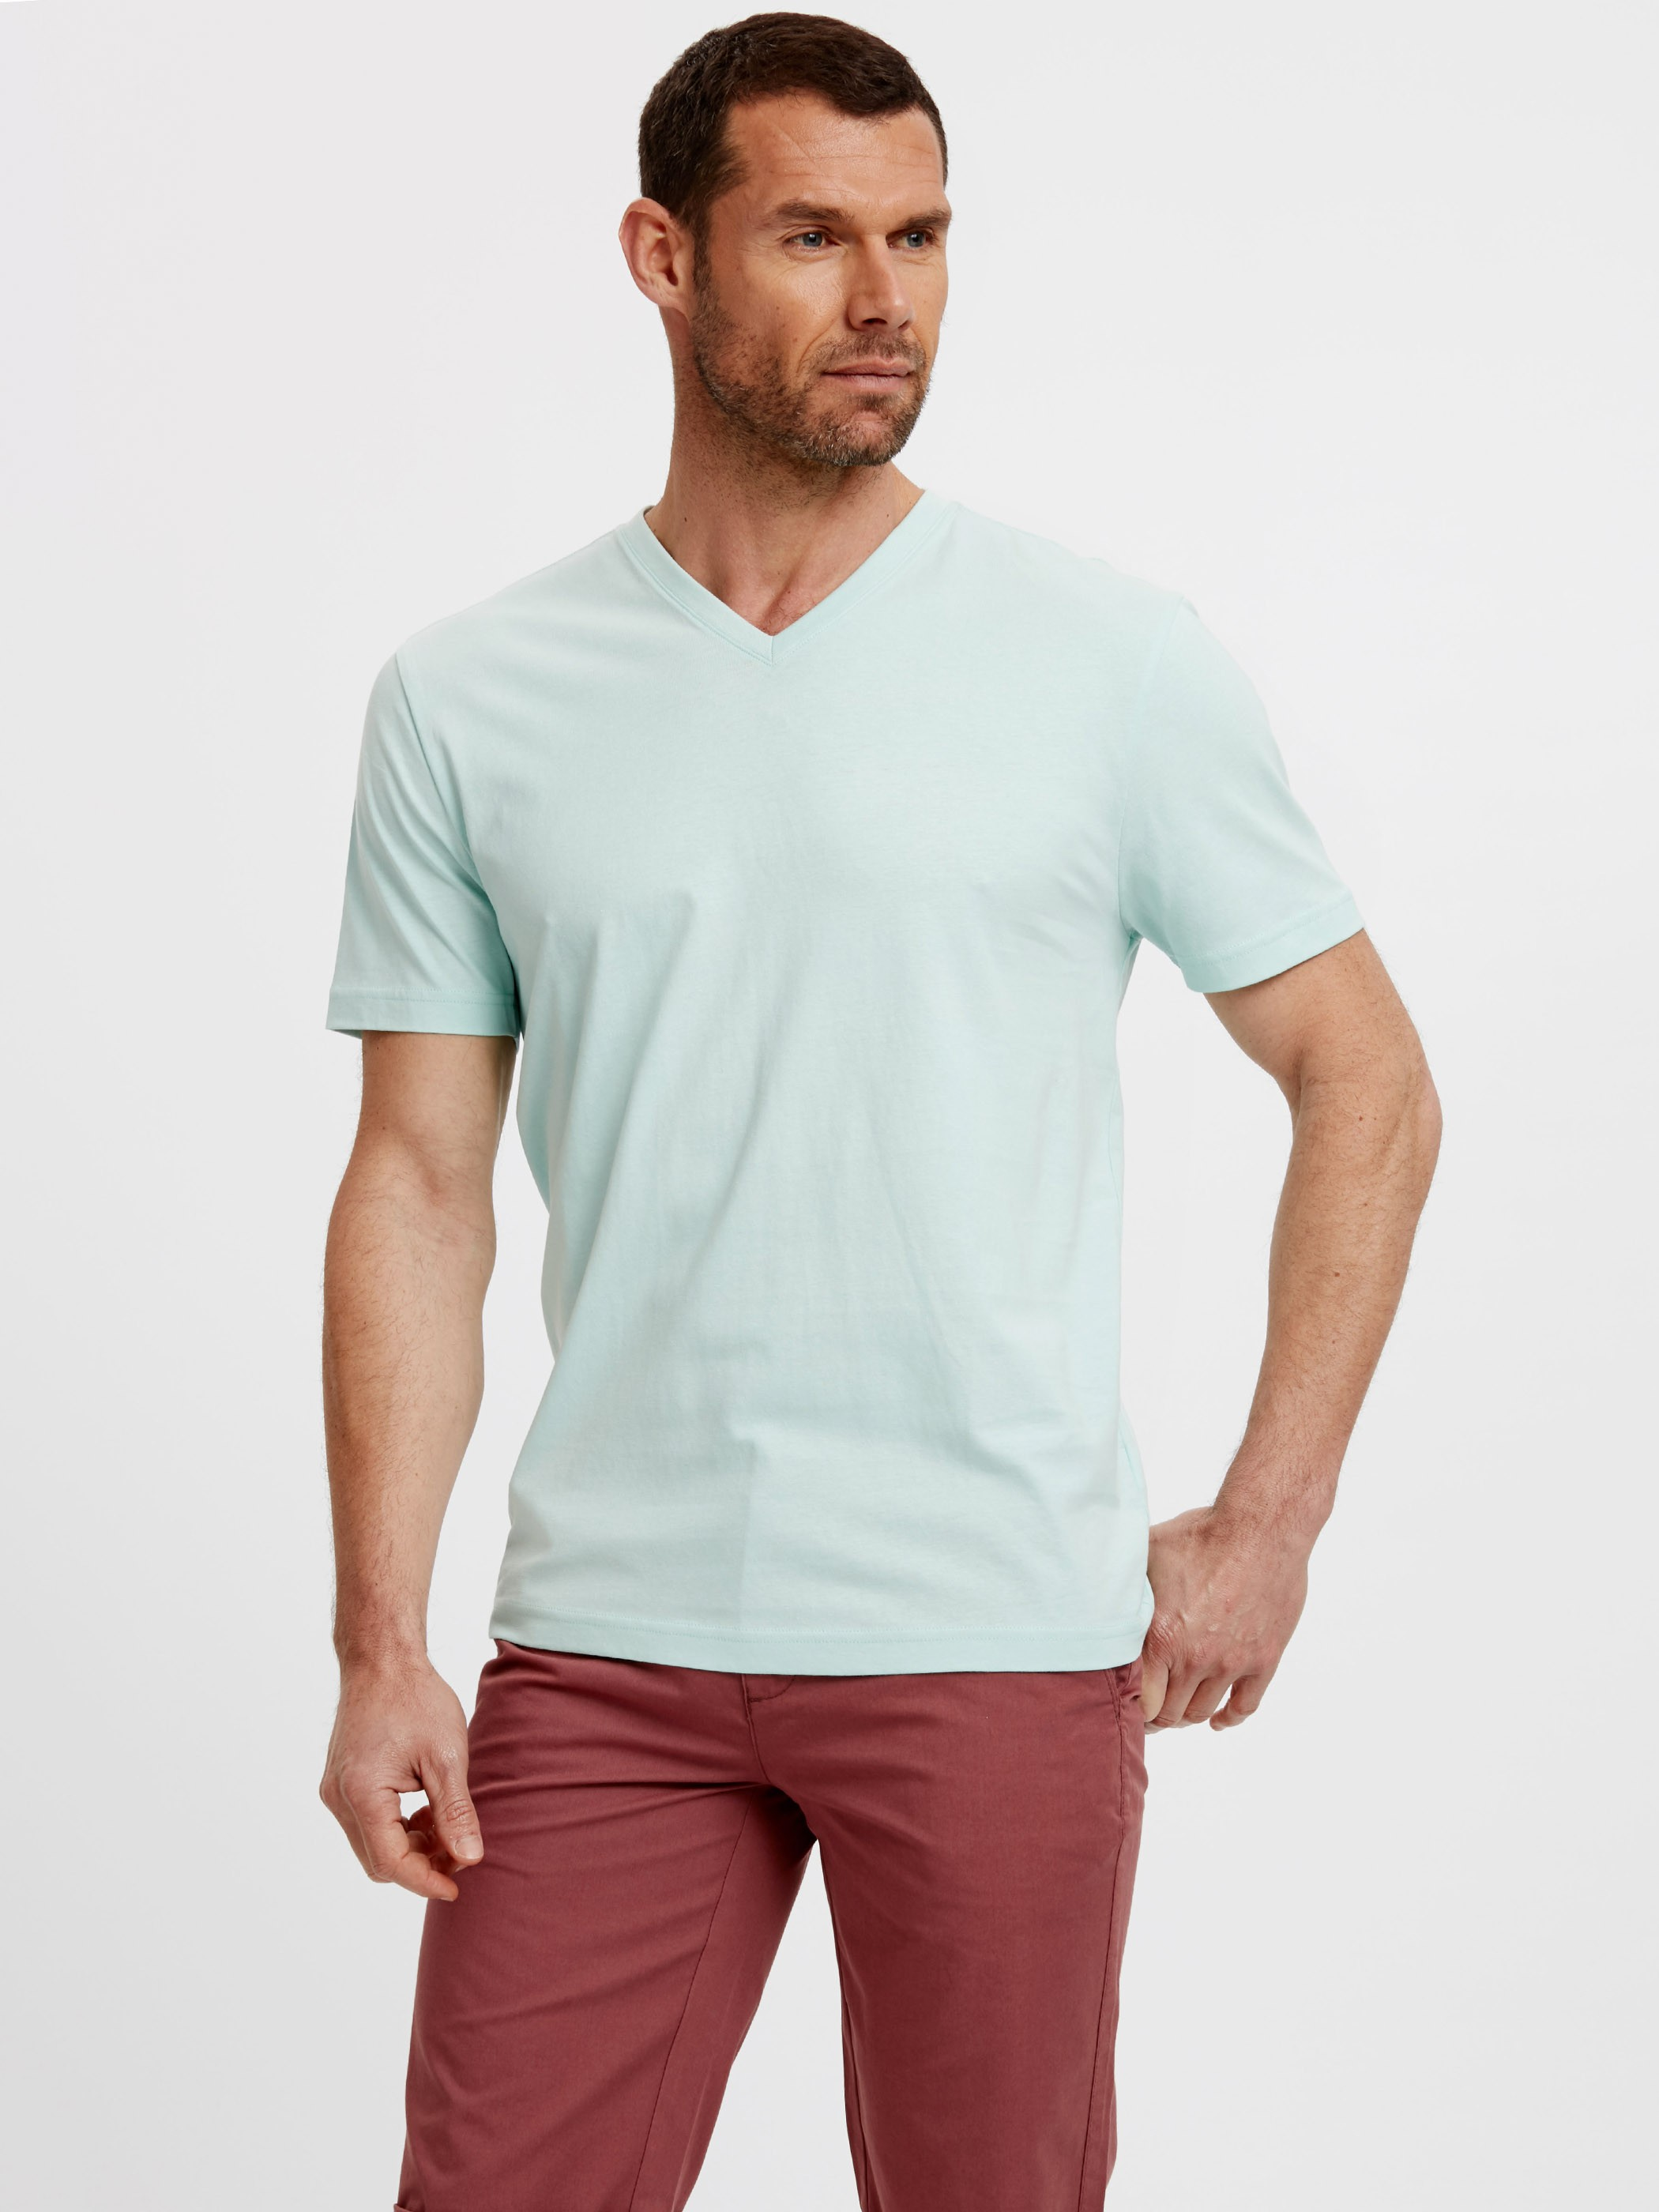 TURQUOISE - V-Neck Short Sleeve Basic Cotton T-Shirt - 8S0917Z8